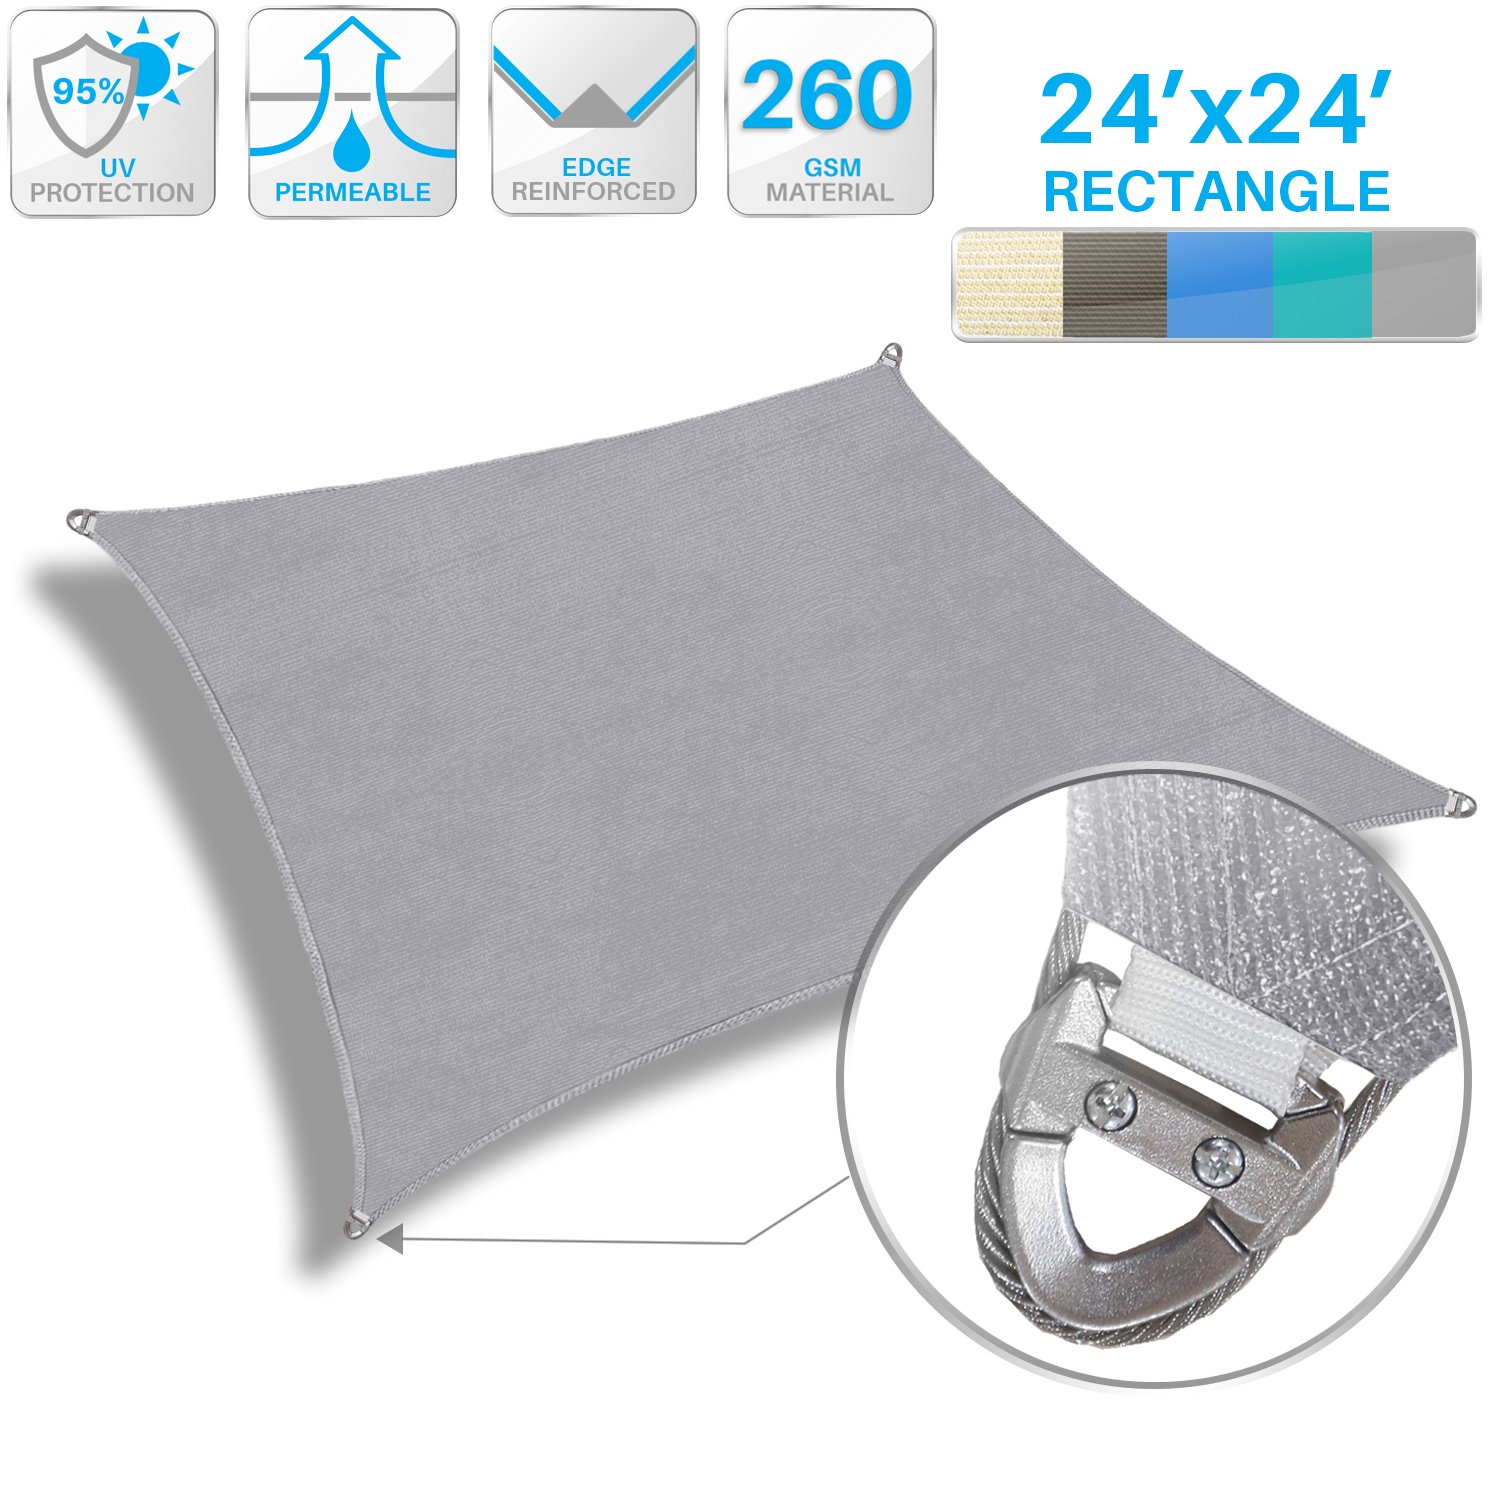 Patio Large Sun Shade Sail 24' x 24' Rectangle Heavy Duty Strengthen Durable Outdoor Canopy UV Block Fabric A-Ring Design Metal Spring Reinforcement 7 Year Warranty -Light Gray by Patio Paradise